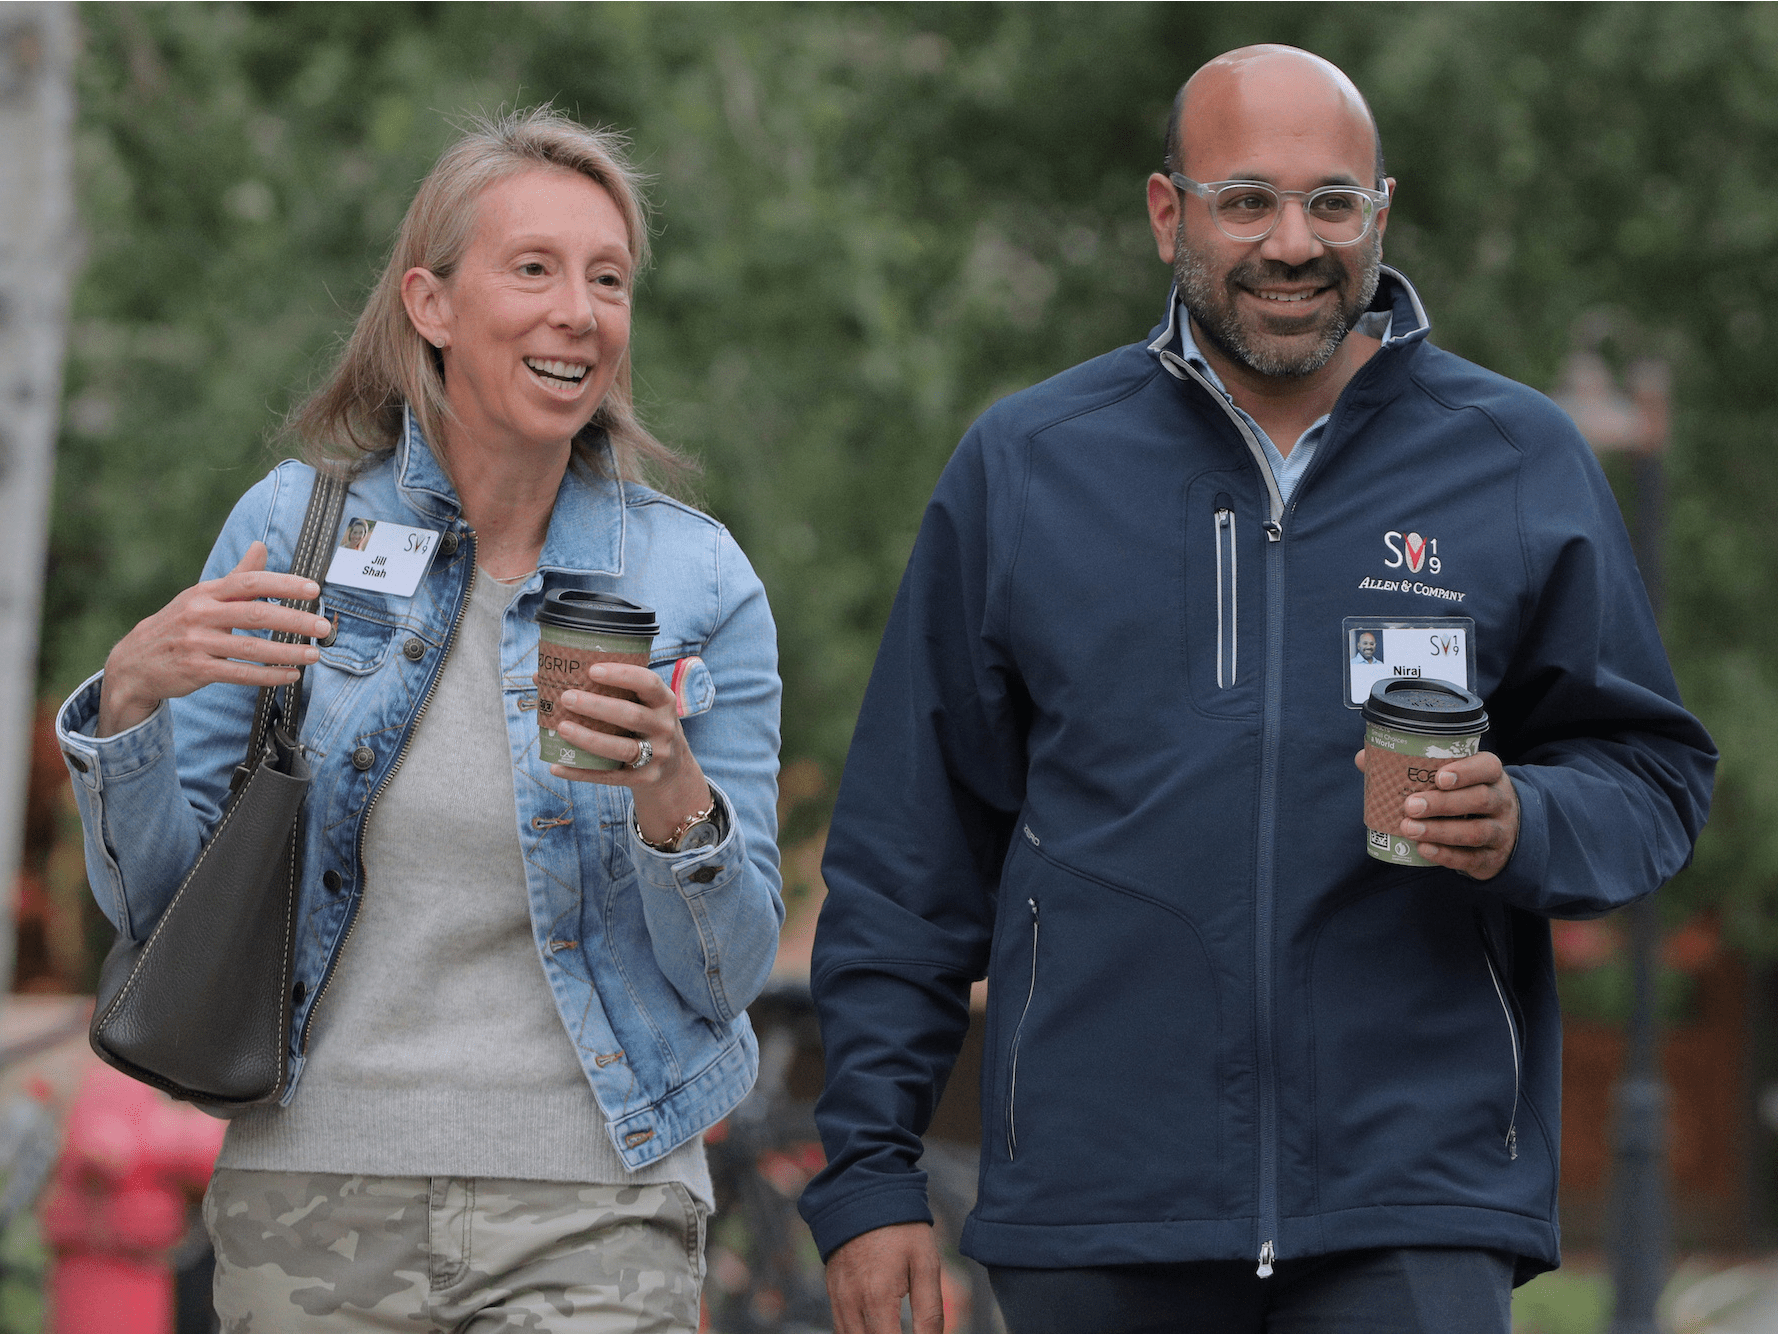 Jill Shah, founder and CEO of Jill's list, walks with her husband Niraj Shah, co-founder, co-chairman, and CEO of Wayfair, attend the annual Allen and Co. Sun Valley media conference in Sun Valley, Idaho